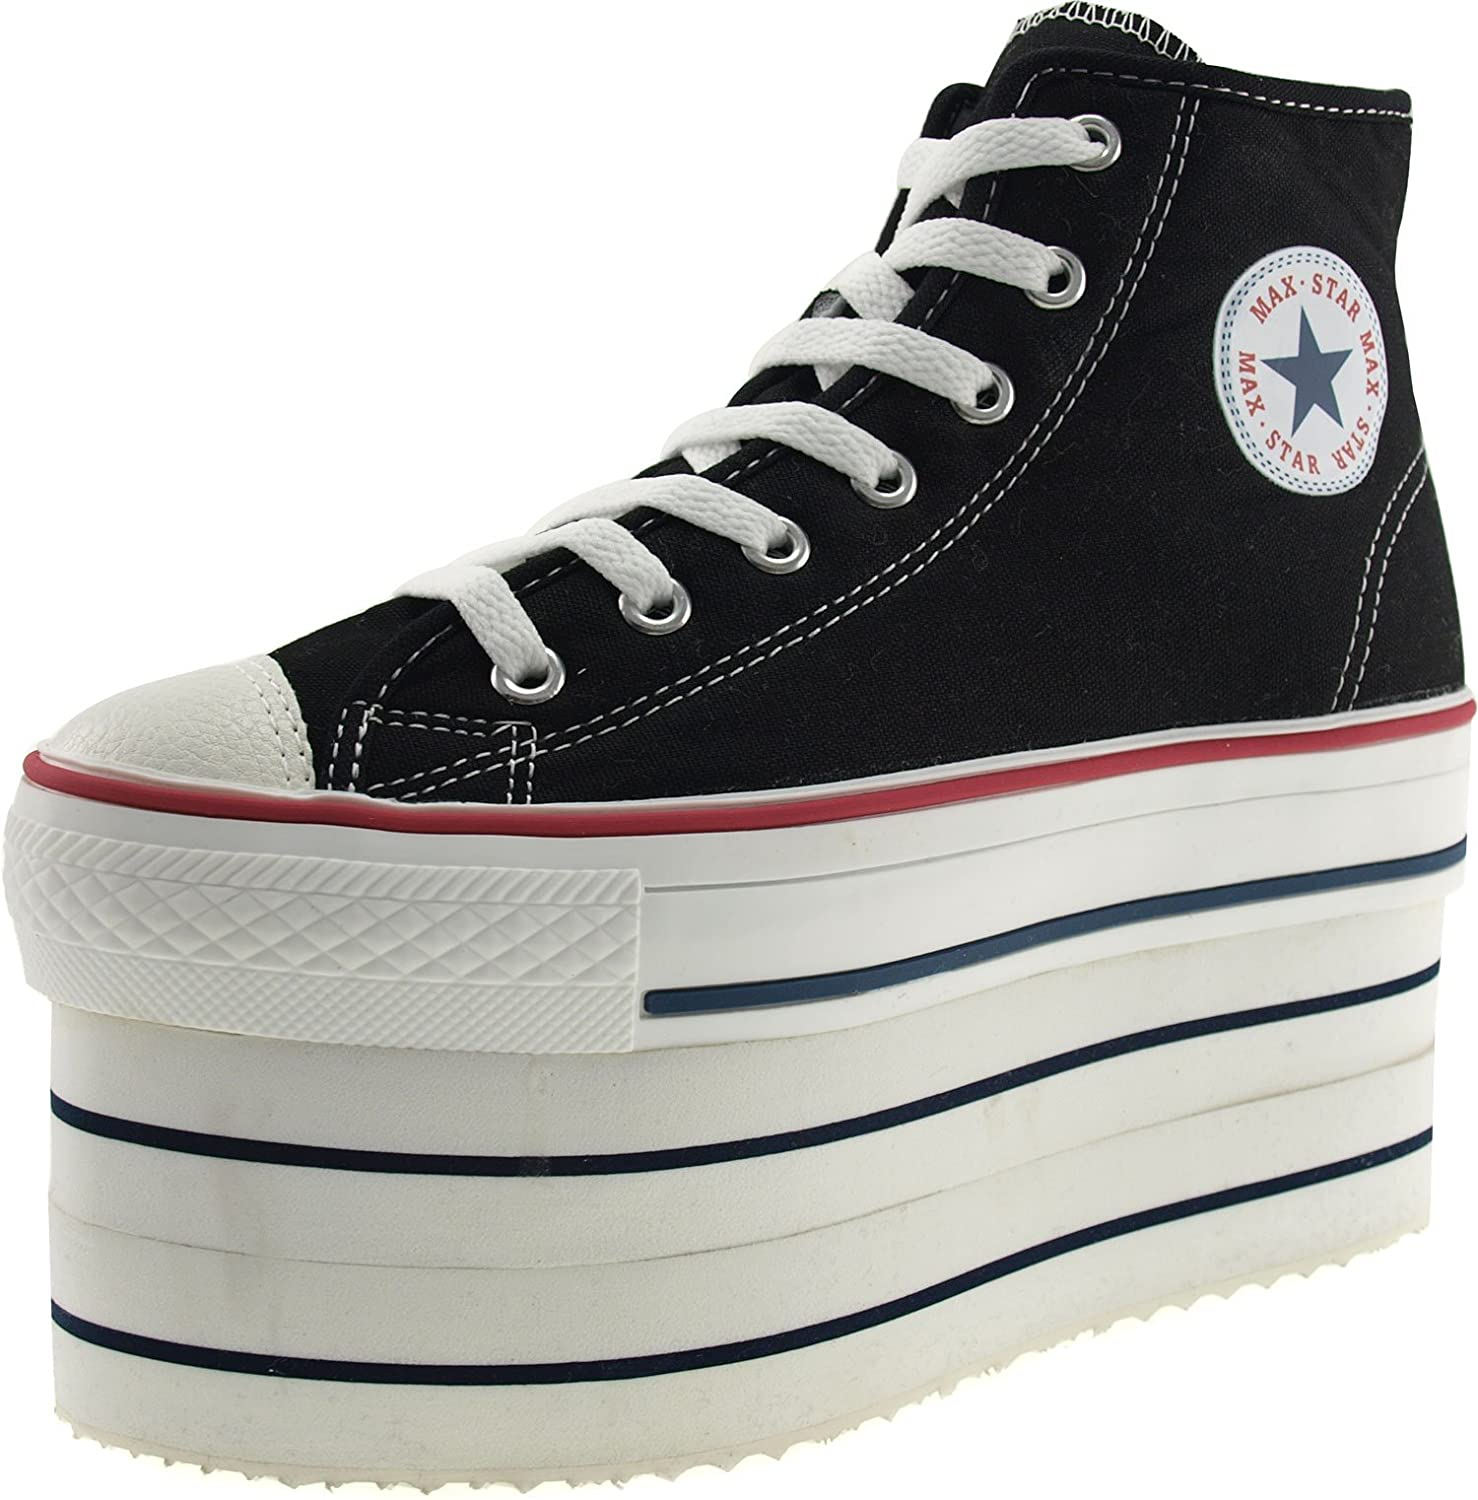 045df96555 Amazon.com | Maxstar Super Double Platform Zipper Canvas Sneakers Shoes |  Fashion Sneakers